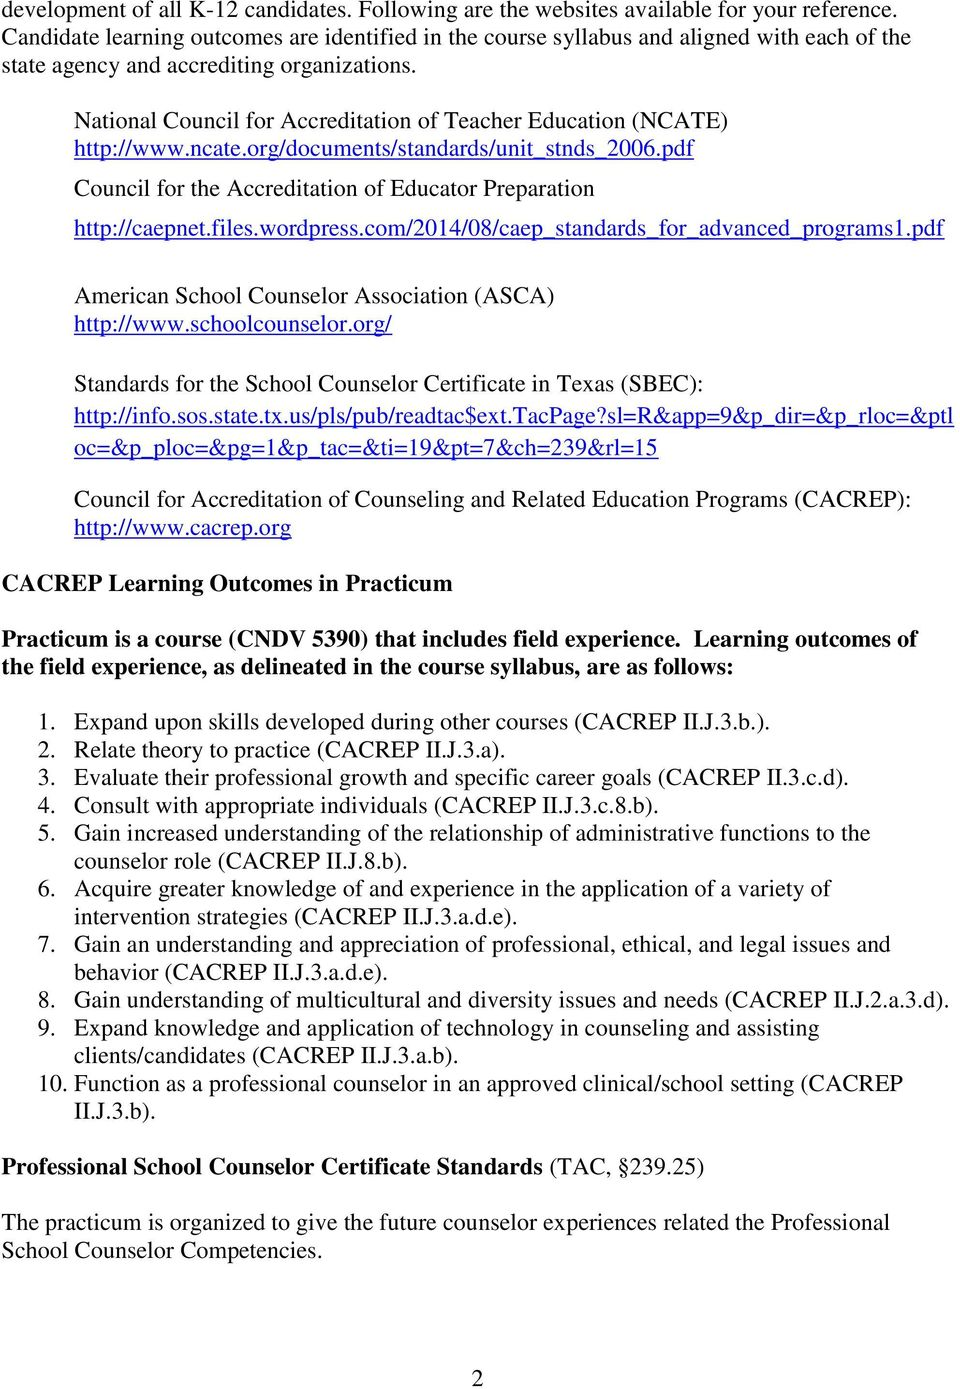 National Council for Accreditation of Teacher Education (NCATE) http://www.ncate.org/documents/standards/unit_stnds_2006.pdf Council for the Accreditation of Educator Preparation http://caepnet.files.